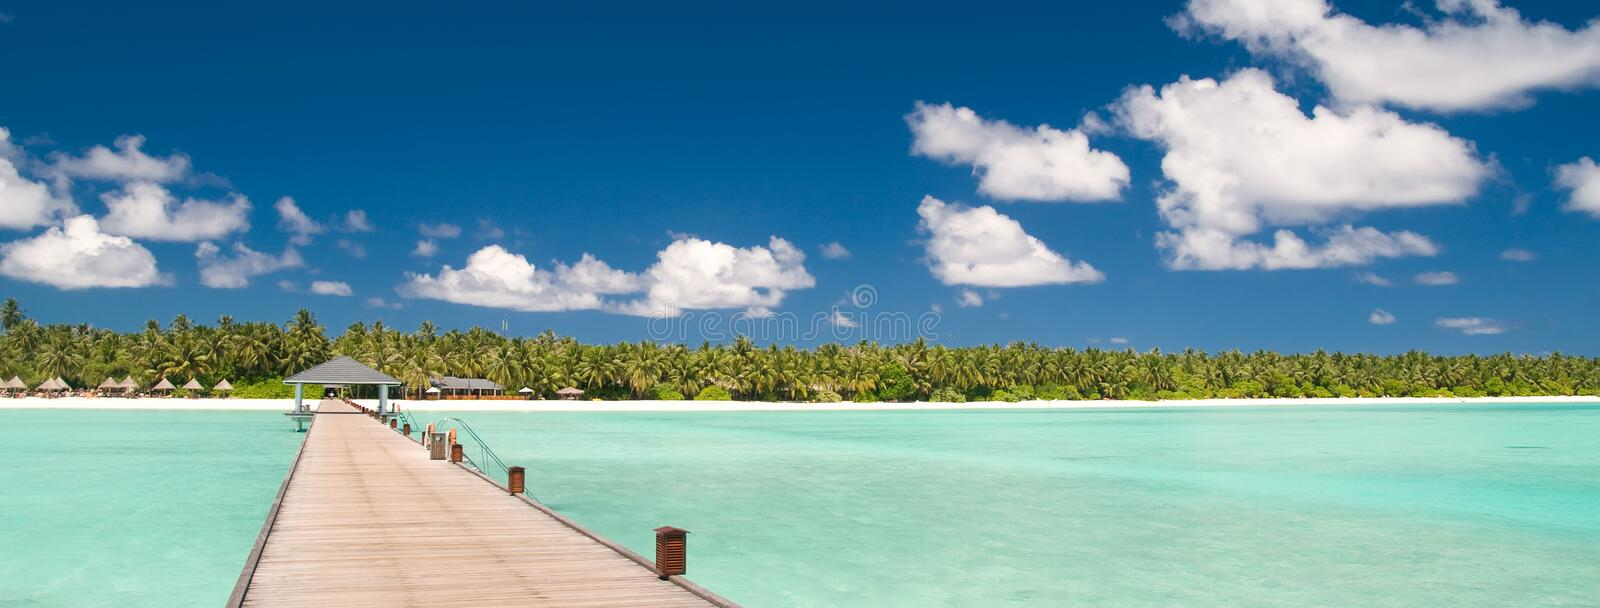 Jetty over turquoise ocean stock image